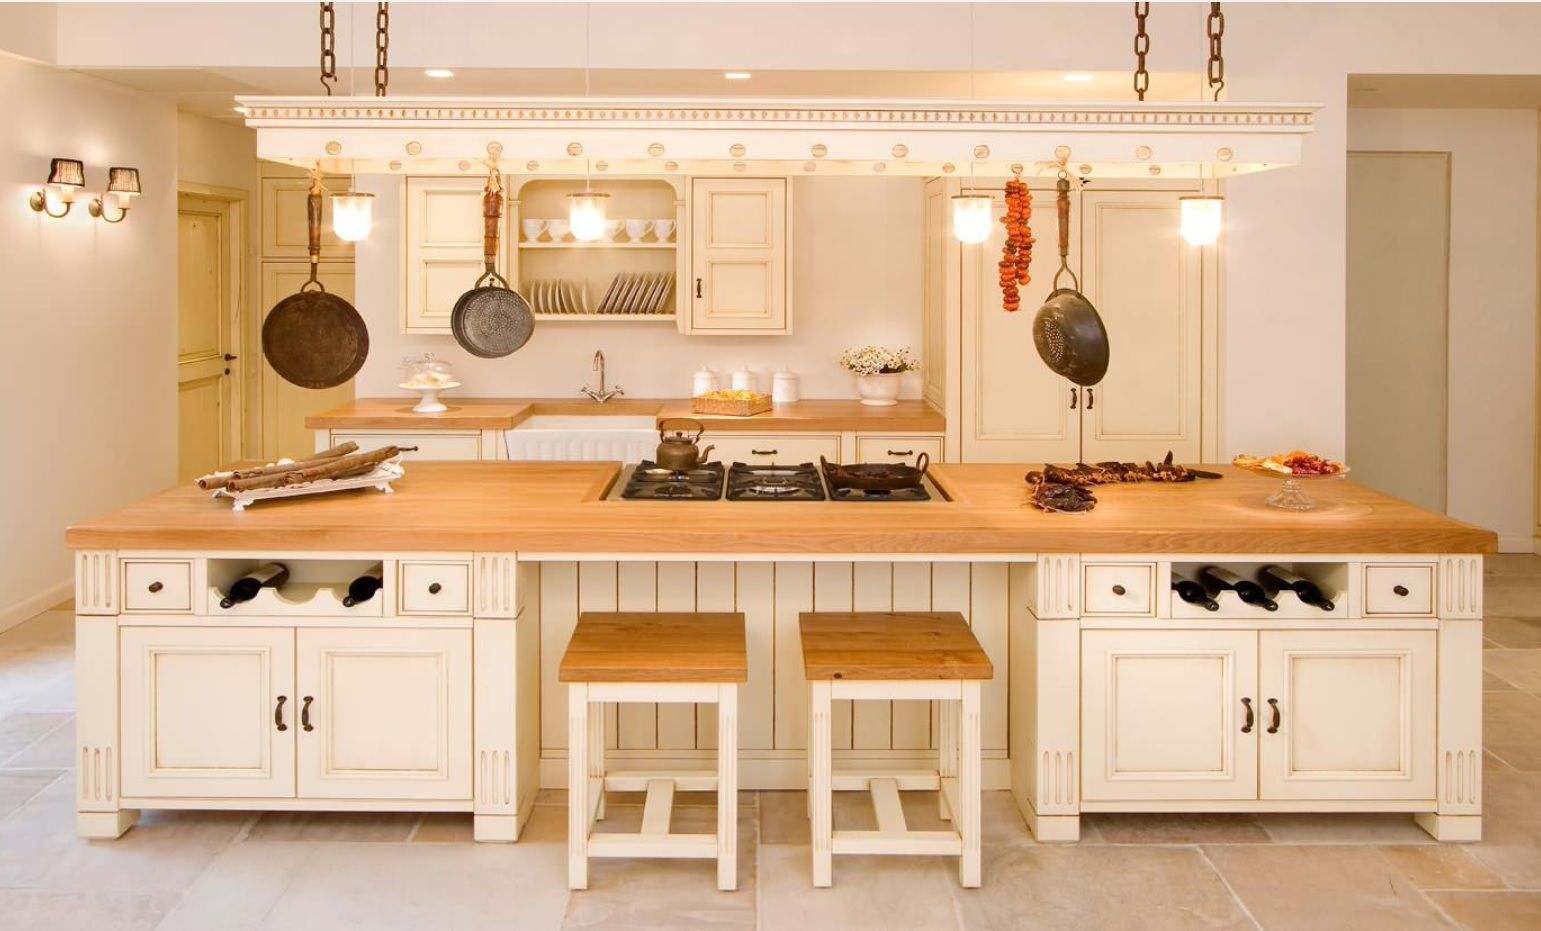 Butcher Block Countertop in Modern Kitchen Interior. Gorgeous Rustic atmosphere in calm light creamy tones